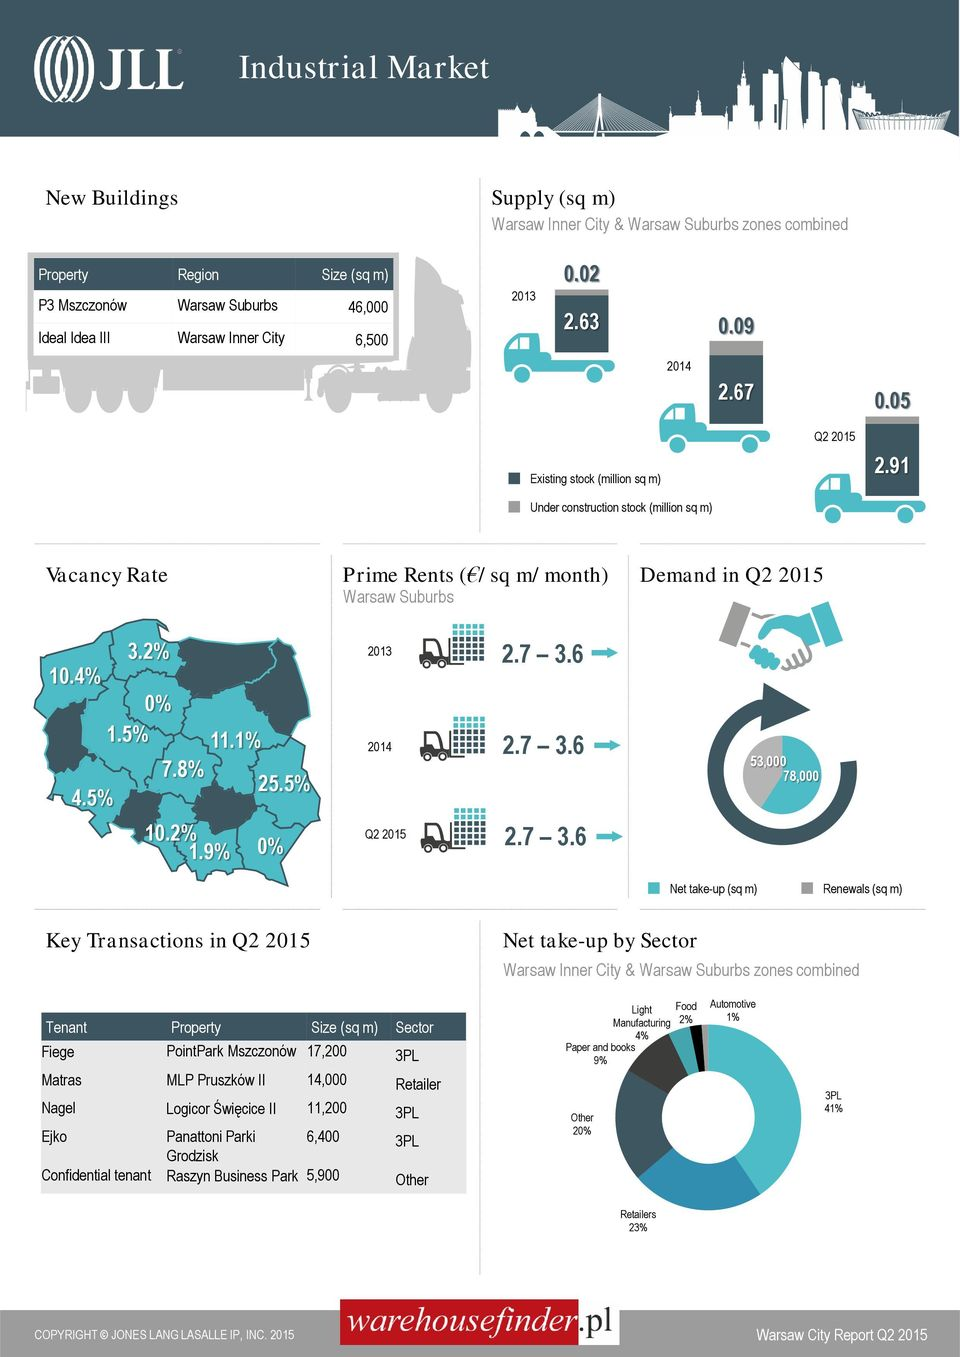 7 3.6 2014 2.7 3.6 Q2 2015 2.7 3.6 Demand in Q2 2015 53,000 78,000 Net take-up () Renewals () Key Transactions in Q2 2015 Net take-up by Sector Warsaw Inner City & Warsaw Suburbs zones combined